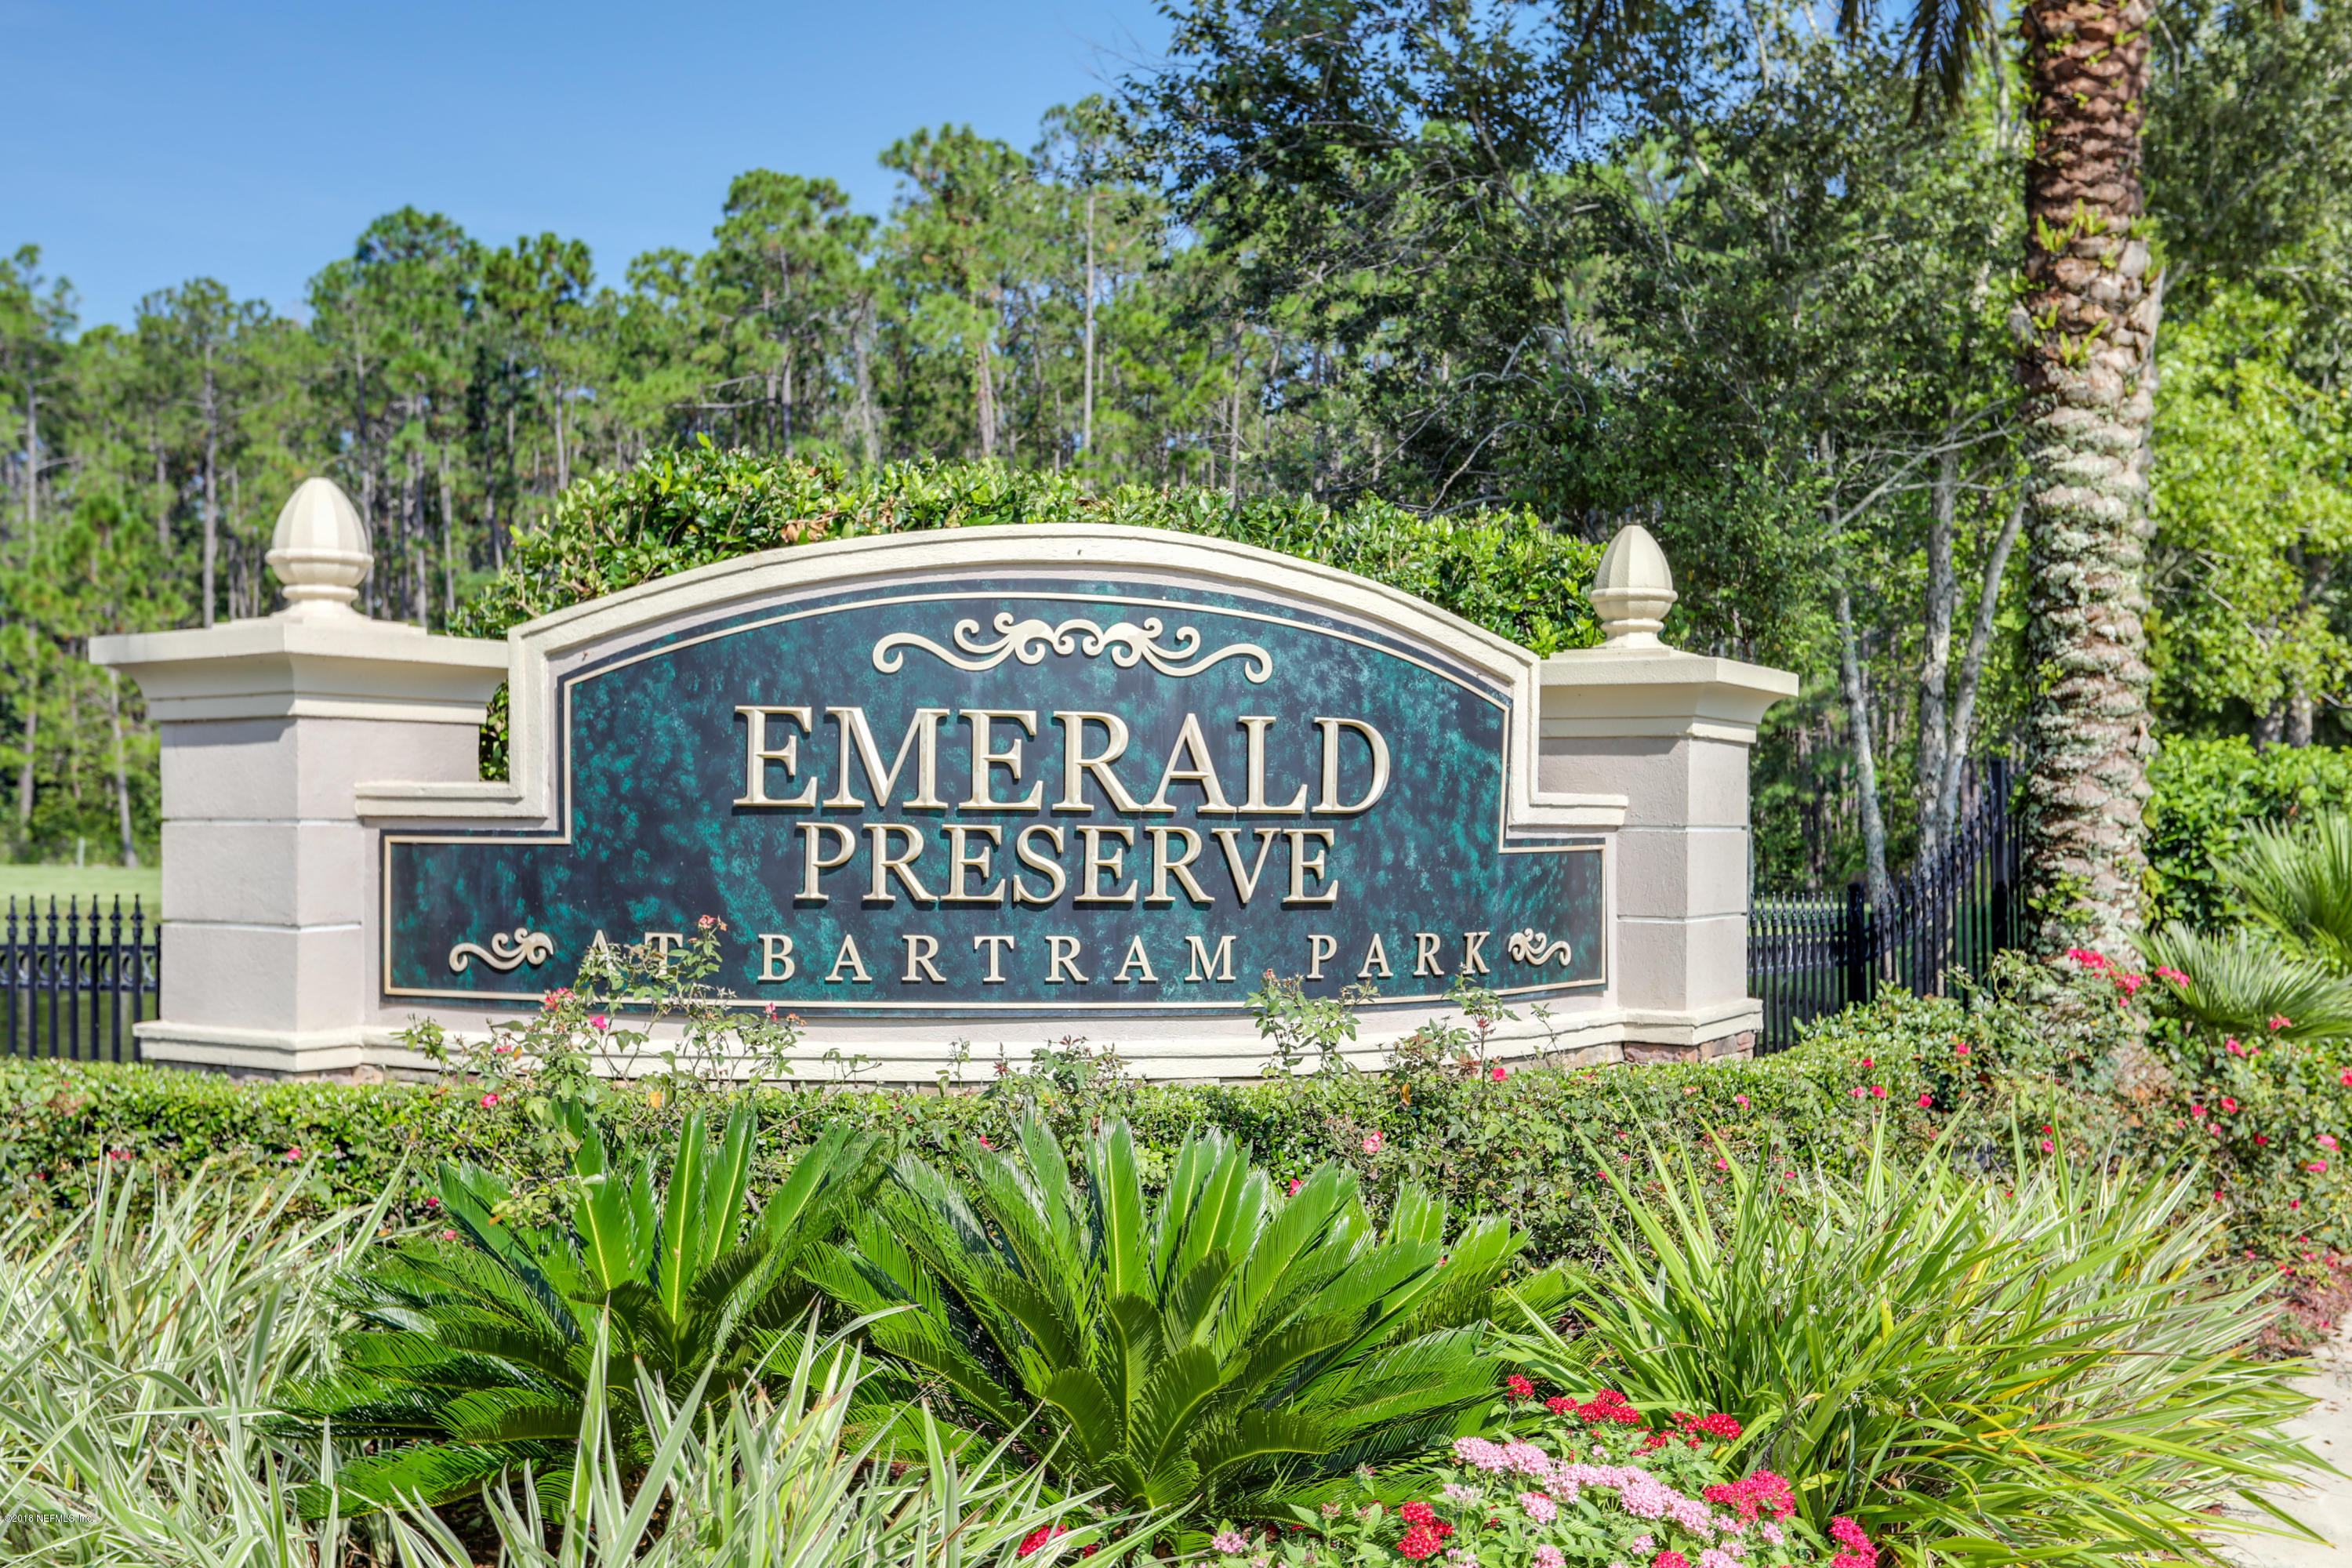 13490 SUNSTONE, JACKSONVILLE, FLORIDA 32258, 2 Bedrooms Bedrooms, ,2 BathroomsBathrooms,Residential - townhome,For sale,SUNSTONE,954178